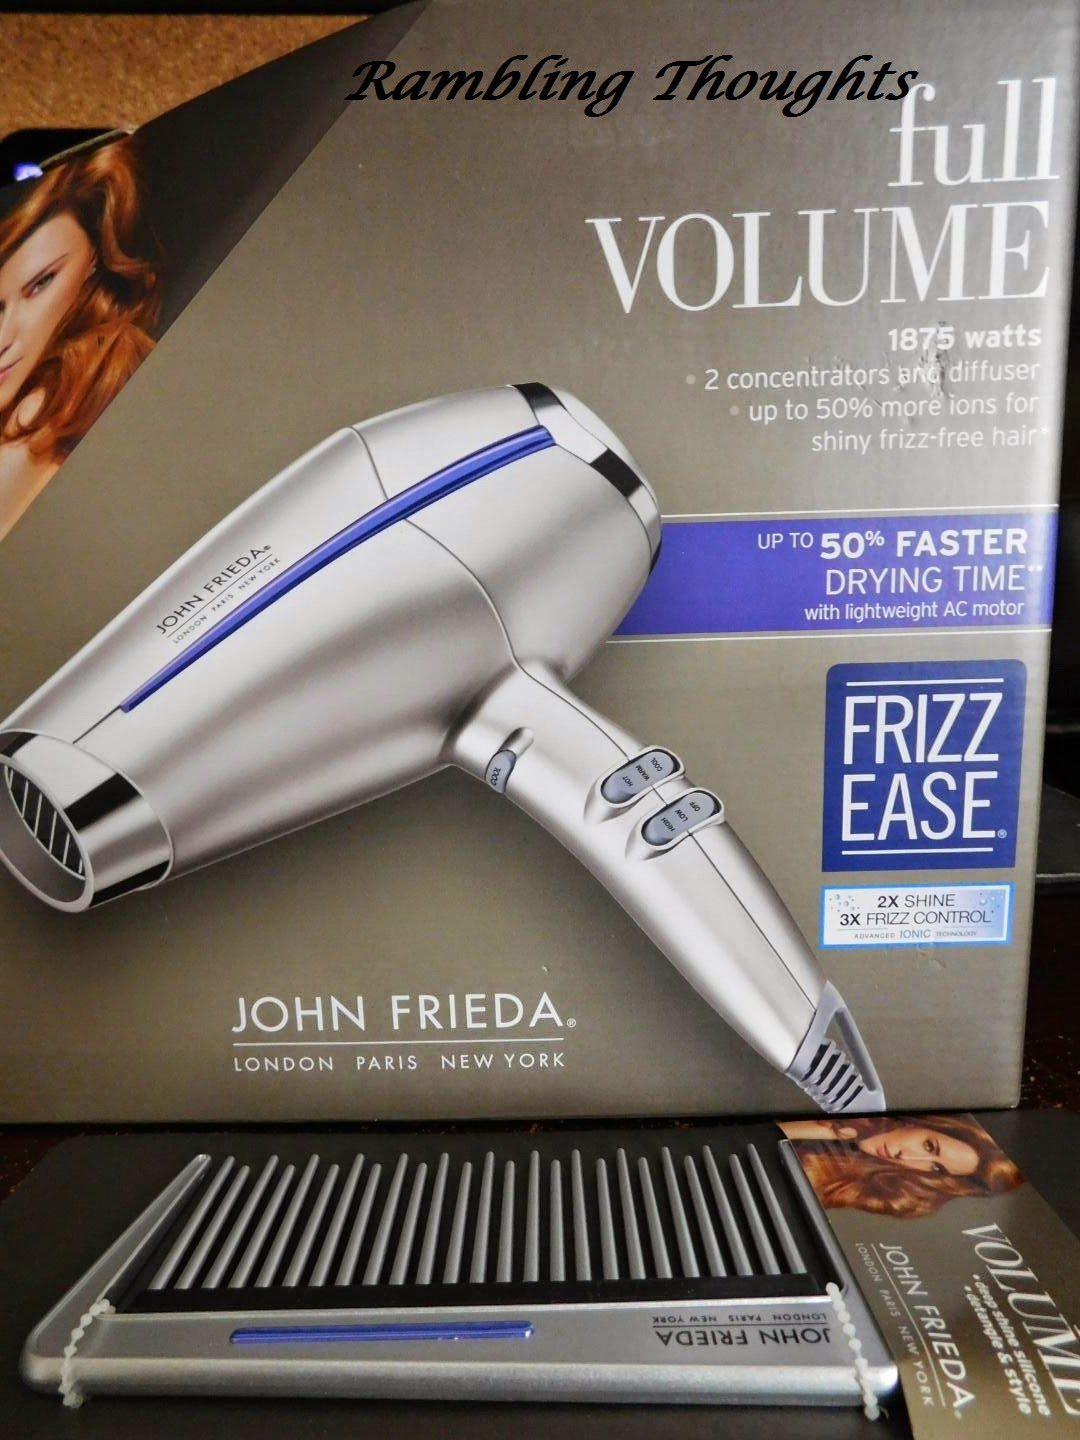 Rambling Thoughts, Free, Coupons, Samples, Products, Magazines, John Frieda, Influenster, Mail